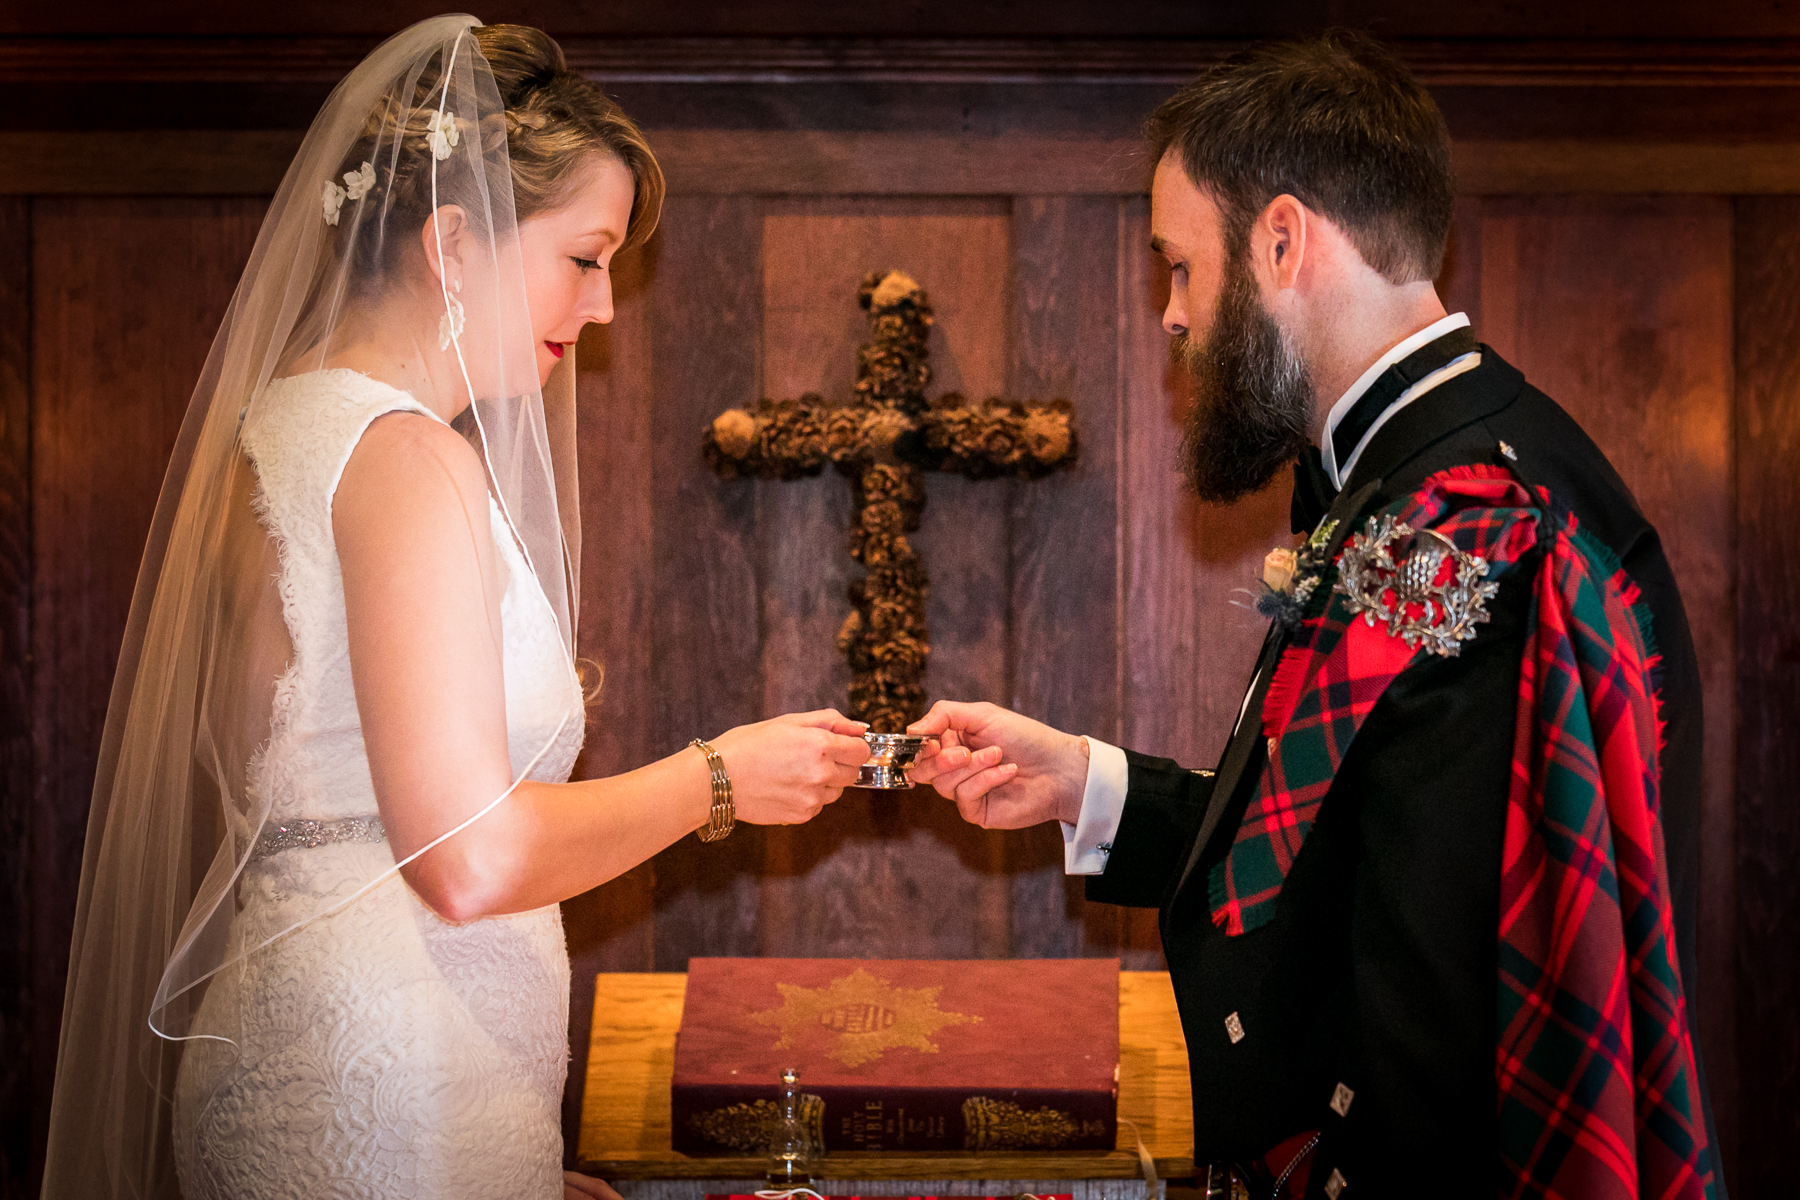 scottish bride and groom pick up quaich during wedding ceremony at swedenborgian church in san francisco photos